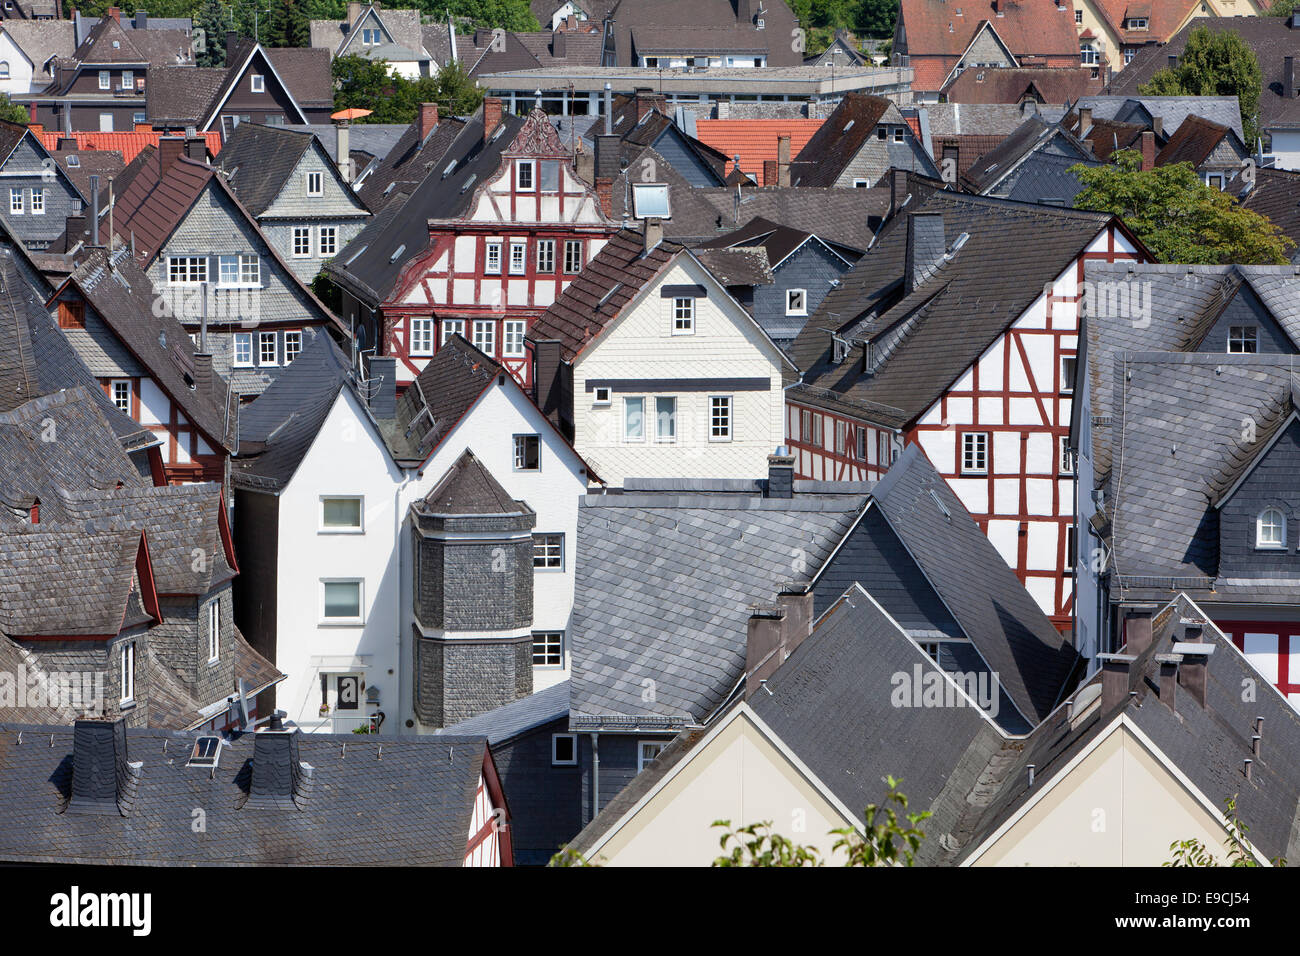 A view of Herborn, Hesse, Germany, Europe Stock Photo